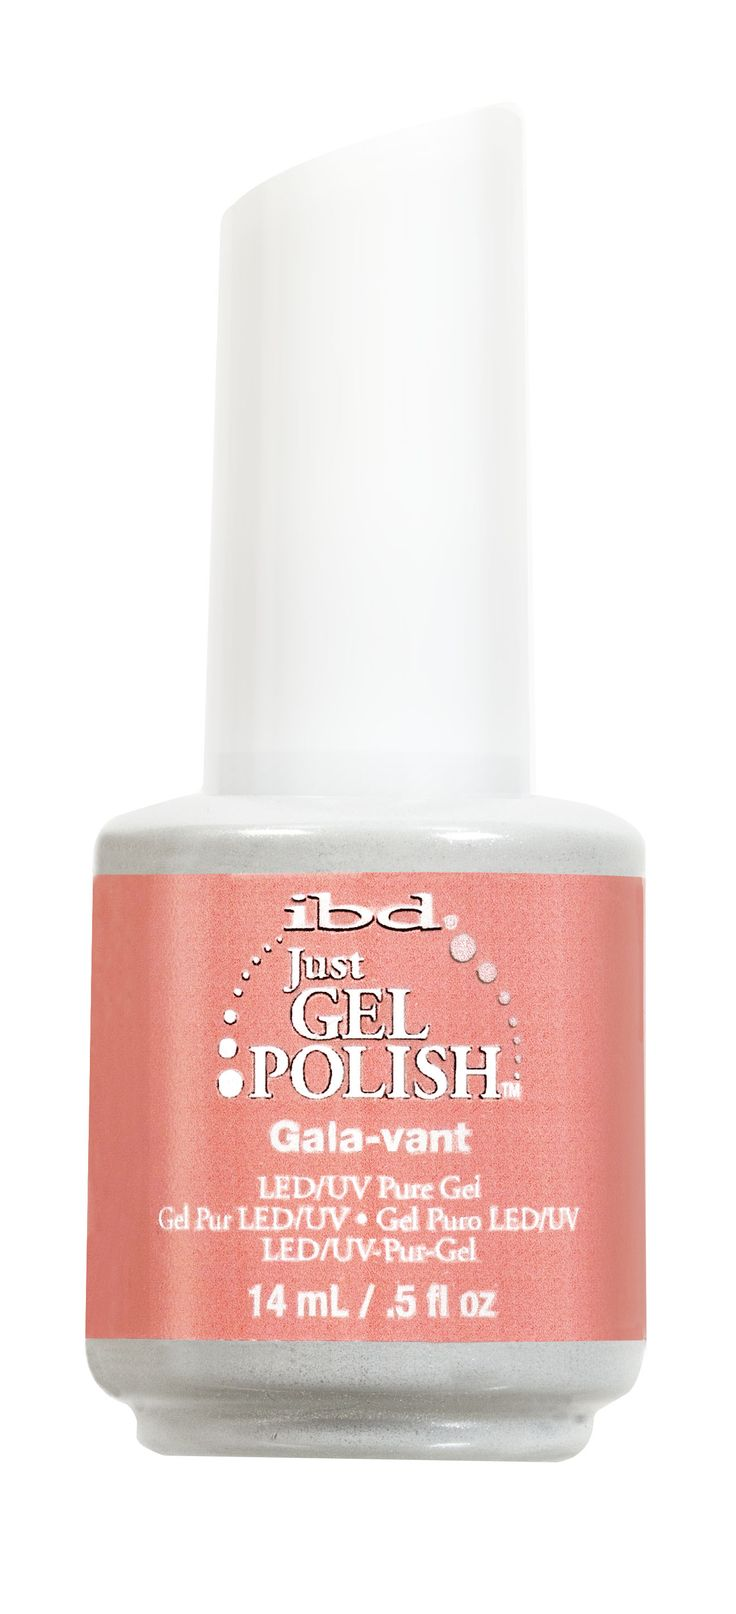 Home ibd just gel polish ibd just gel polish abracadabra - Social Lights Just Gel Polish Collection Gala Vant Ibd Ibdbeauty Ibdnails